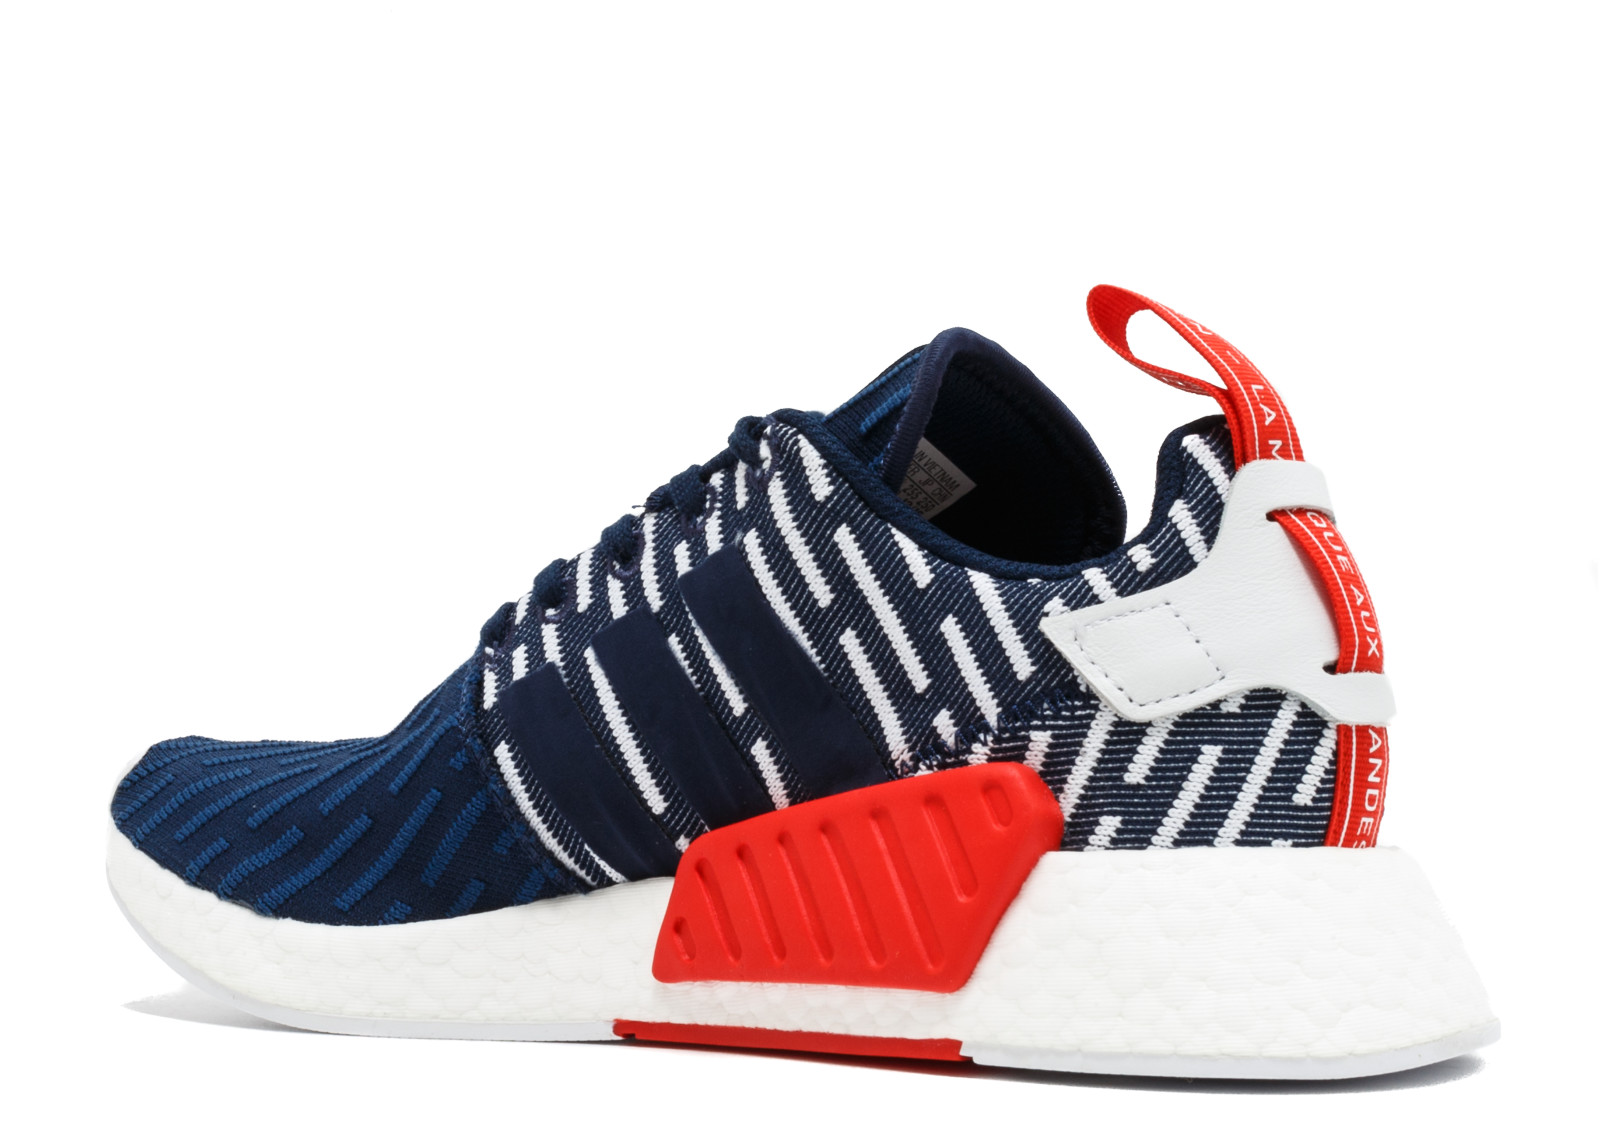 f0892ad26 Adidas NMD R2 Collegiate Navy - 4